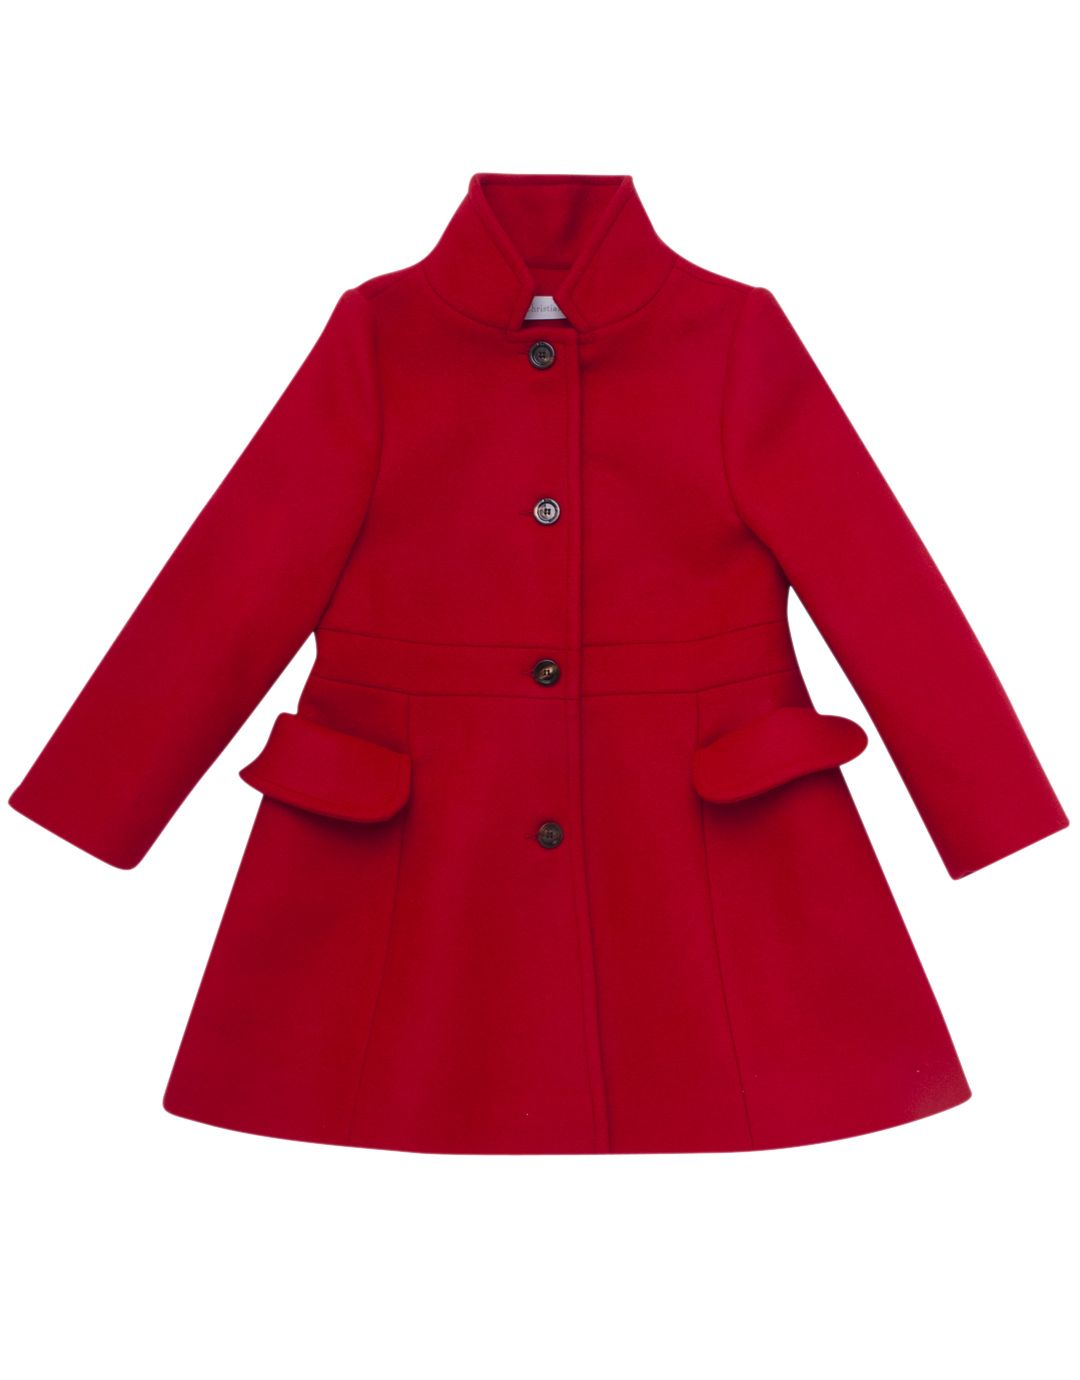 BABY DIOR Girls Dior Red Wool Coat | TILLTWELVE